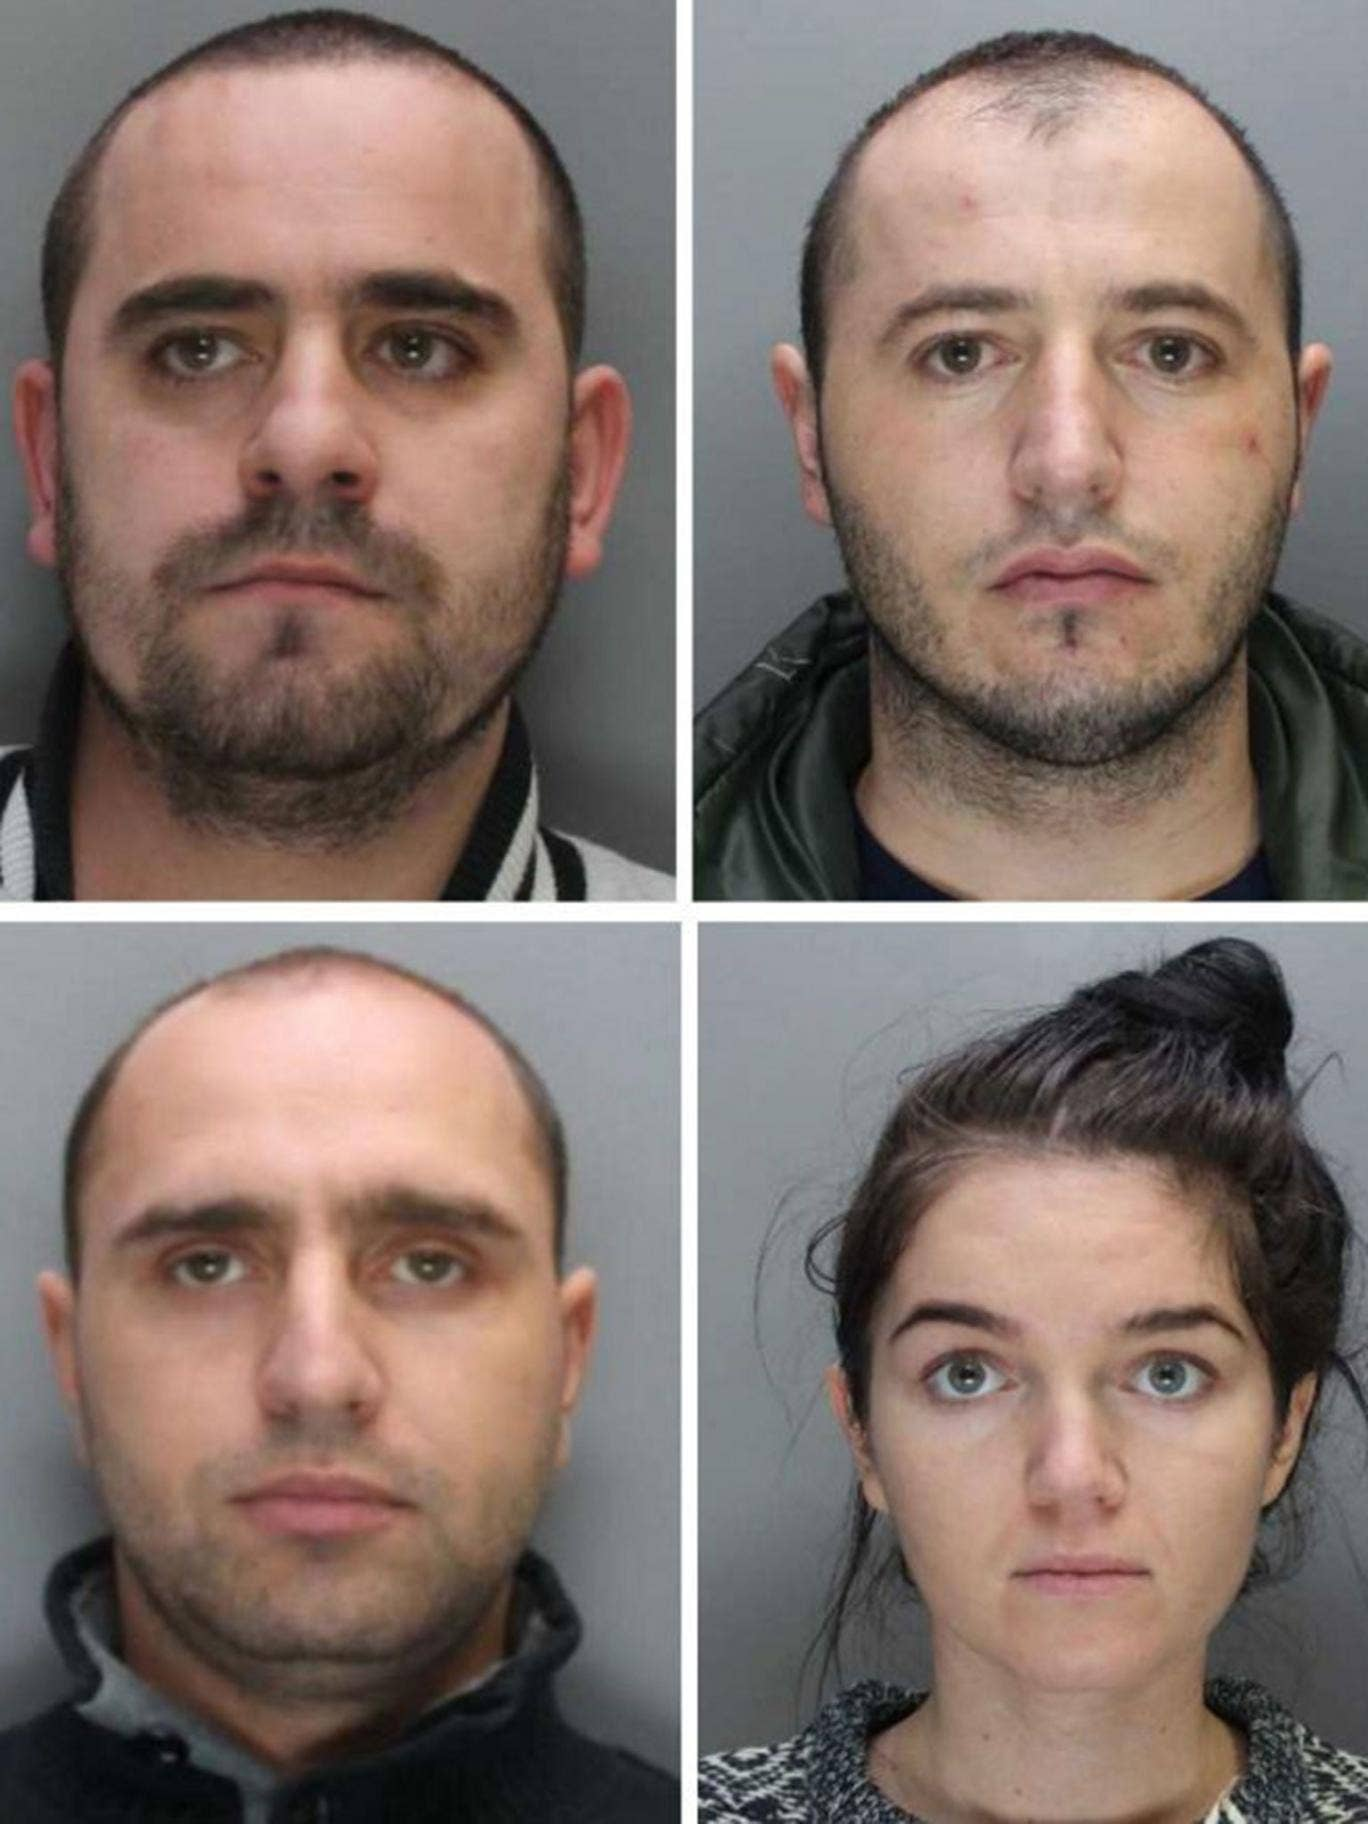 Florin Ioan Silaghi, Vasile Daniel Pop, Adriana Alexandra Turc and Ovidiu Florin Metac, were all part of the gang of Romanian fraudsters who stole an estimated £16 million-worth of bank card details from more than 60,000 people in the UK and abroad